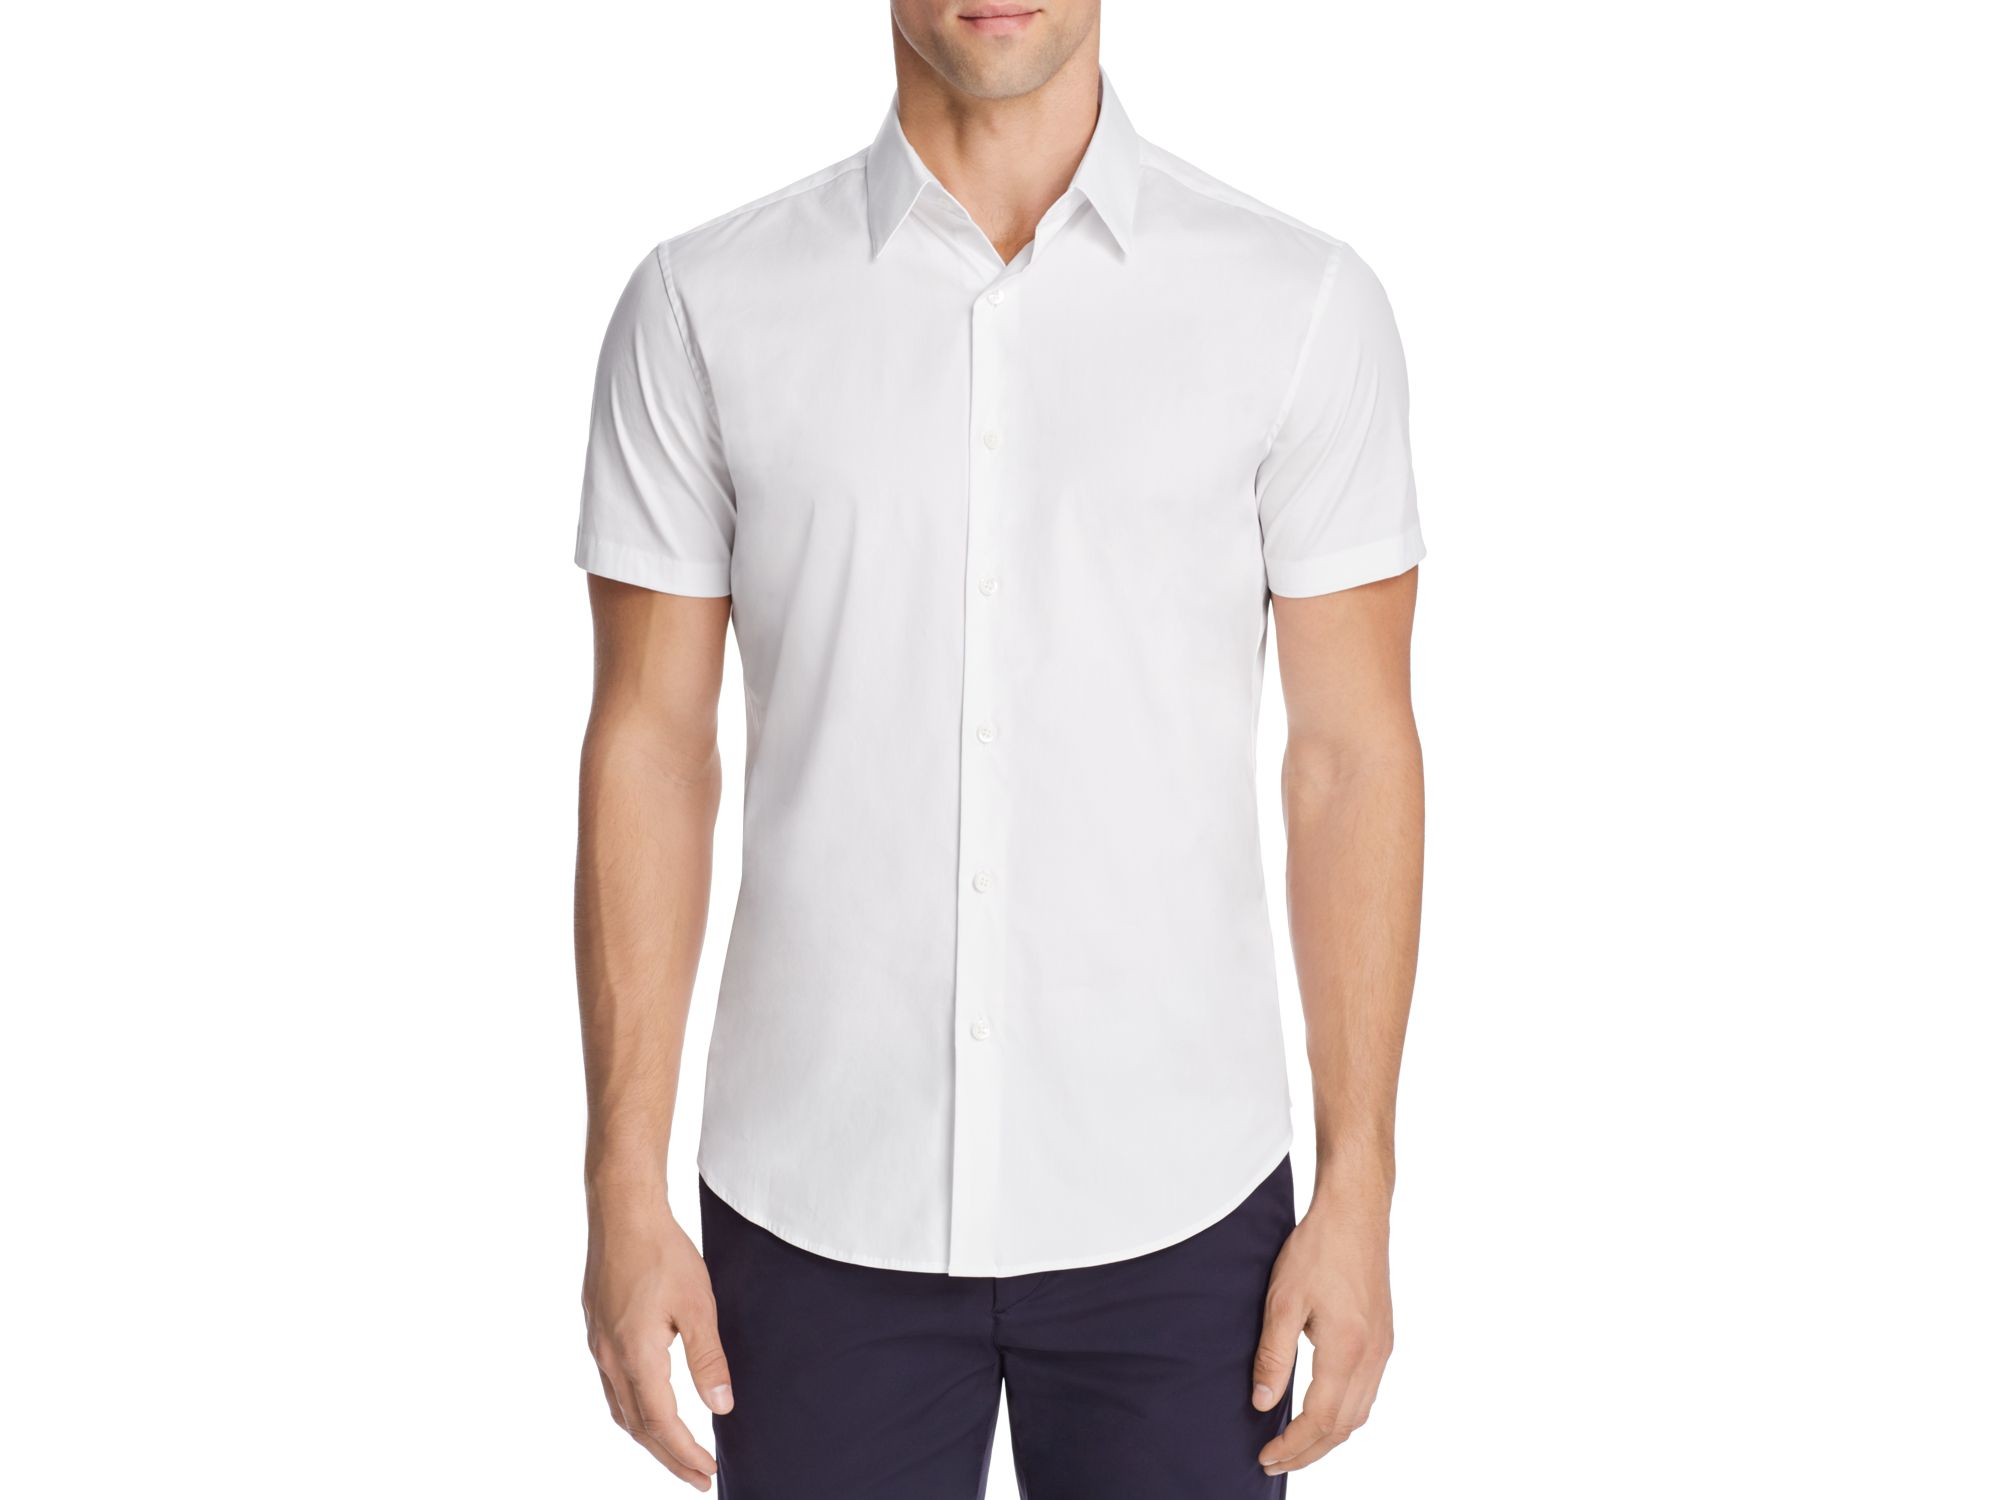 Theory sylvain slim fit button down shirt in white for men for Slim fit white button down shirt